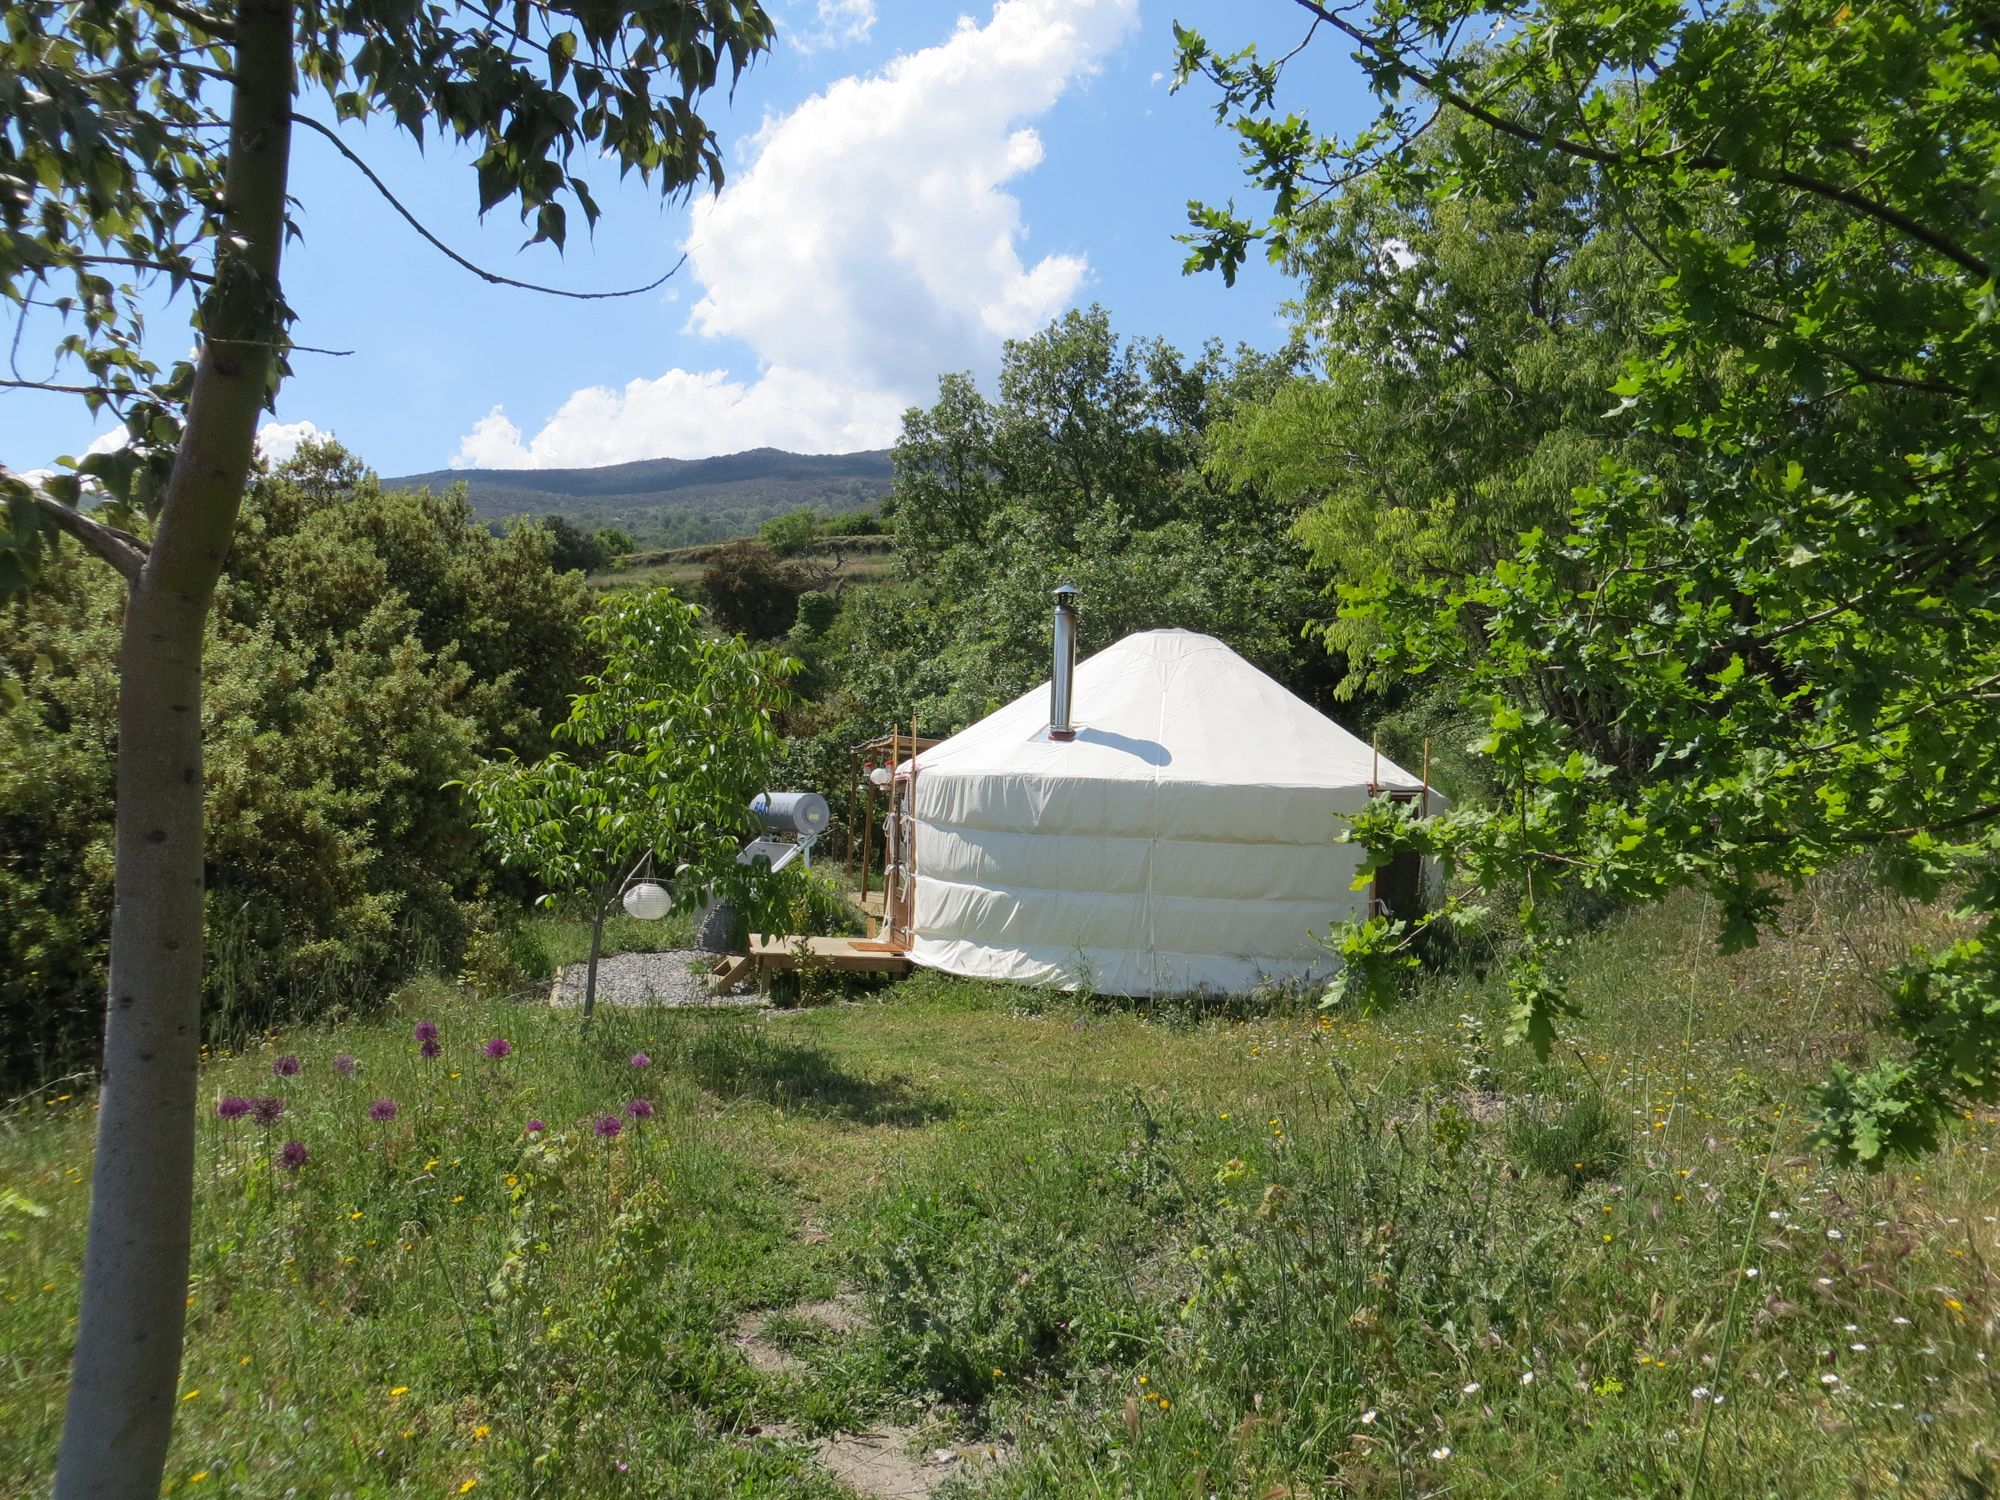 Campsites in Andalucia holidays at Cool Camping